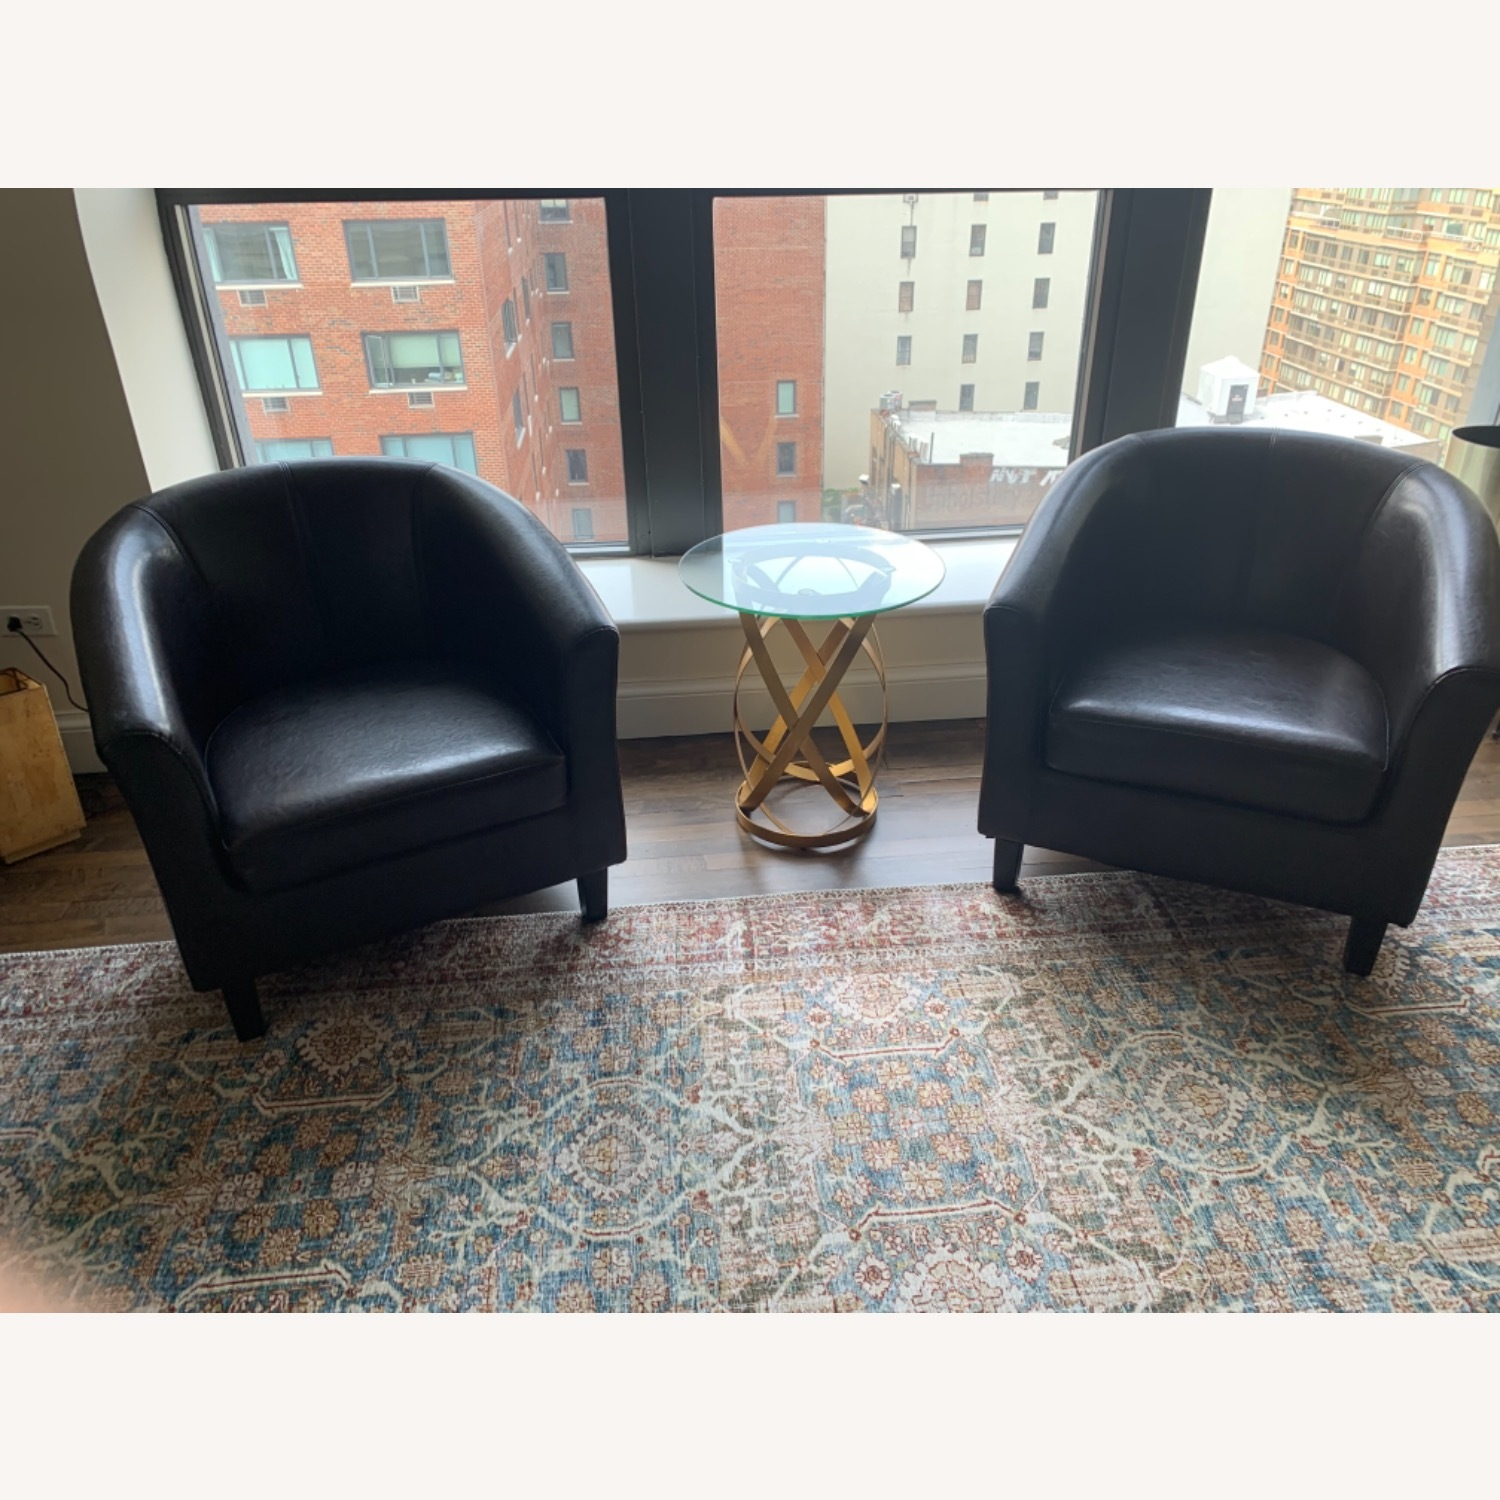 Pair of Imitation Leather Barrel Chairs - image-1